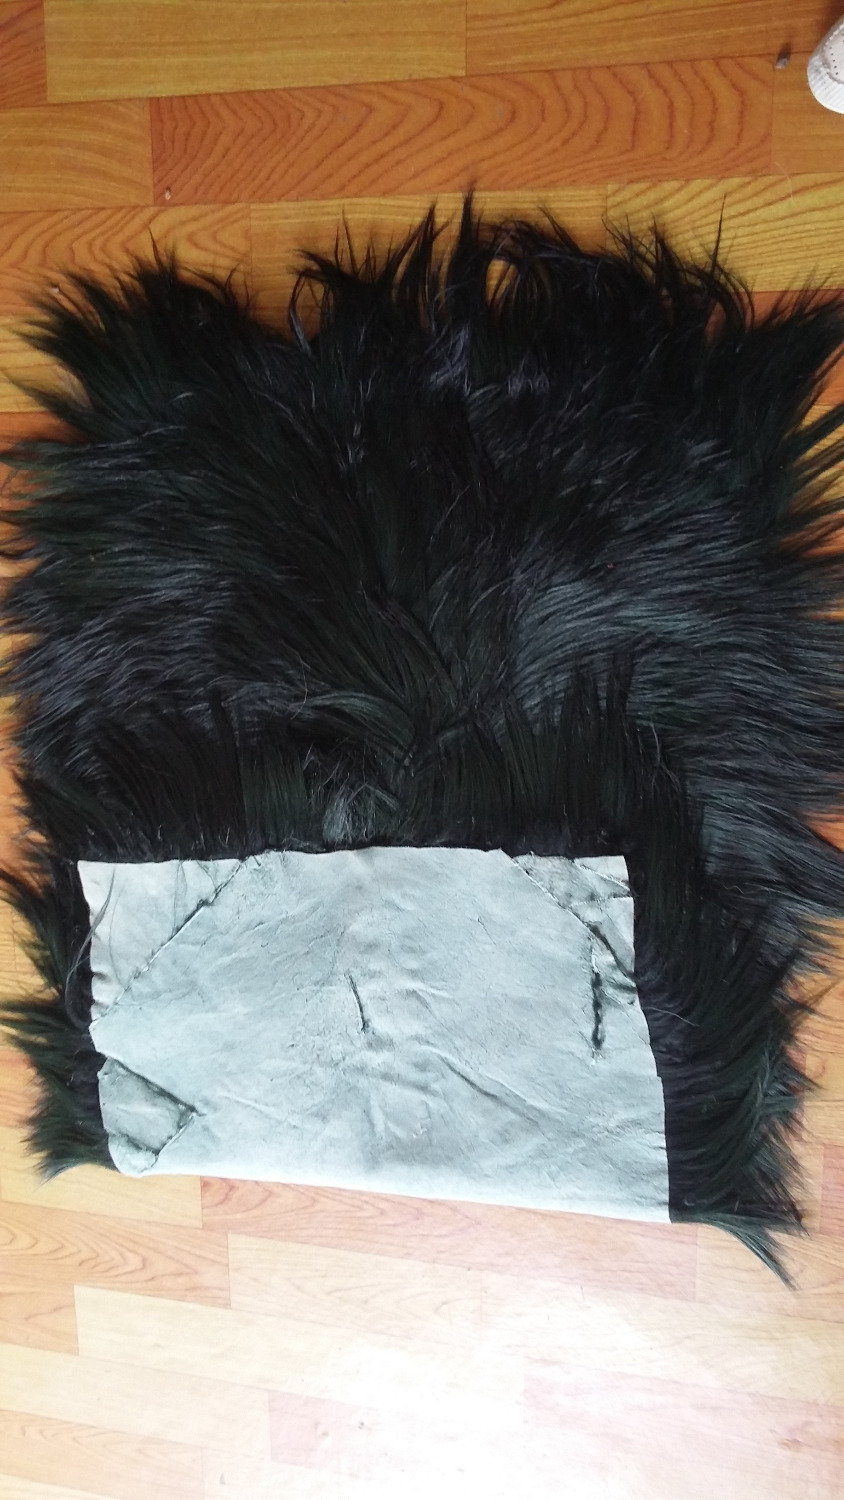 Tibetan Lamb Rug Mongolian Lamb Skins / Black Goat Fur - Arts, Crafts and Sewing - Photo 2